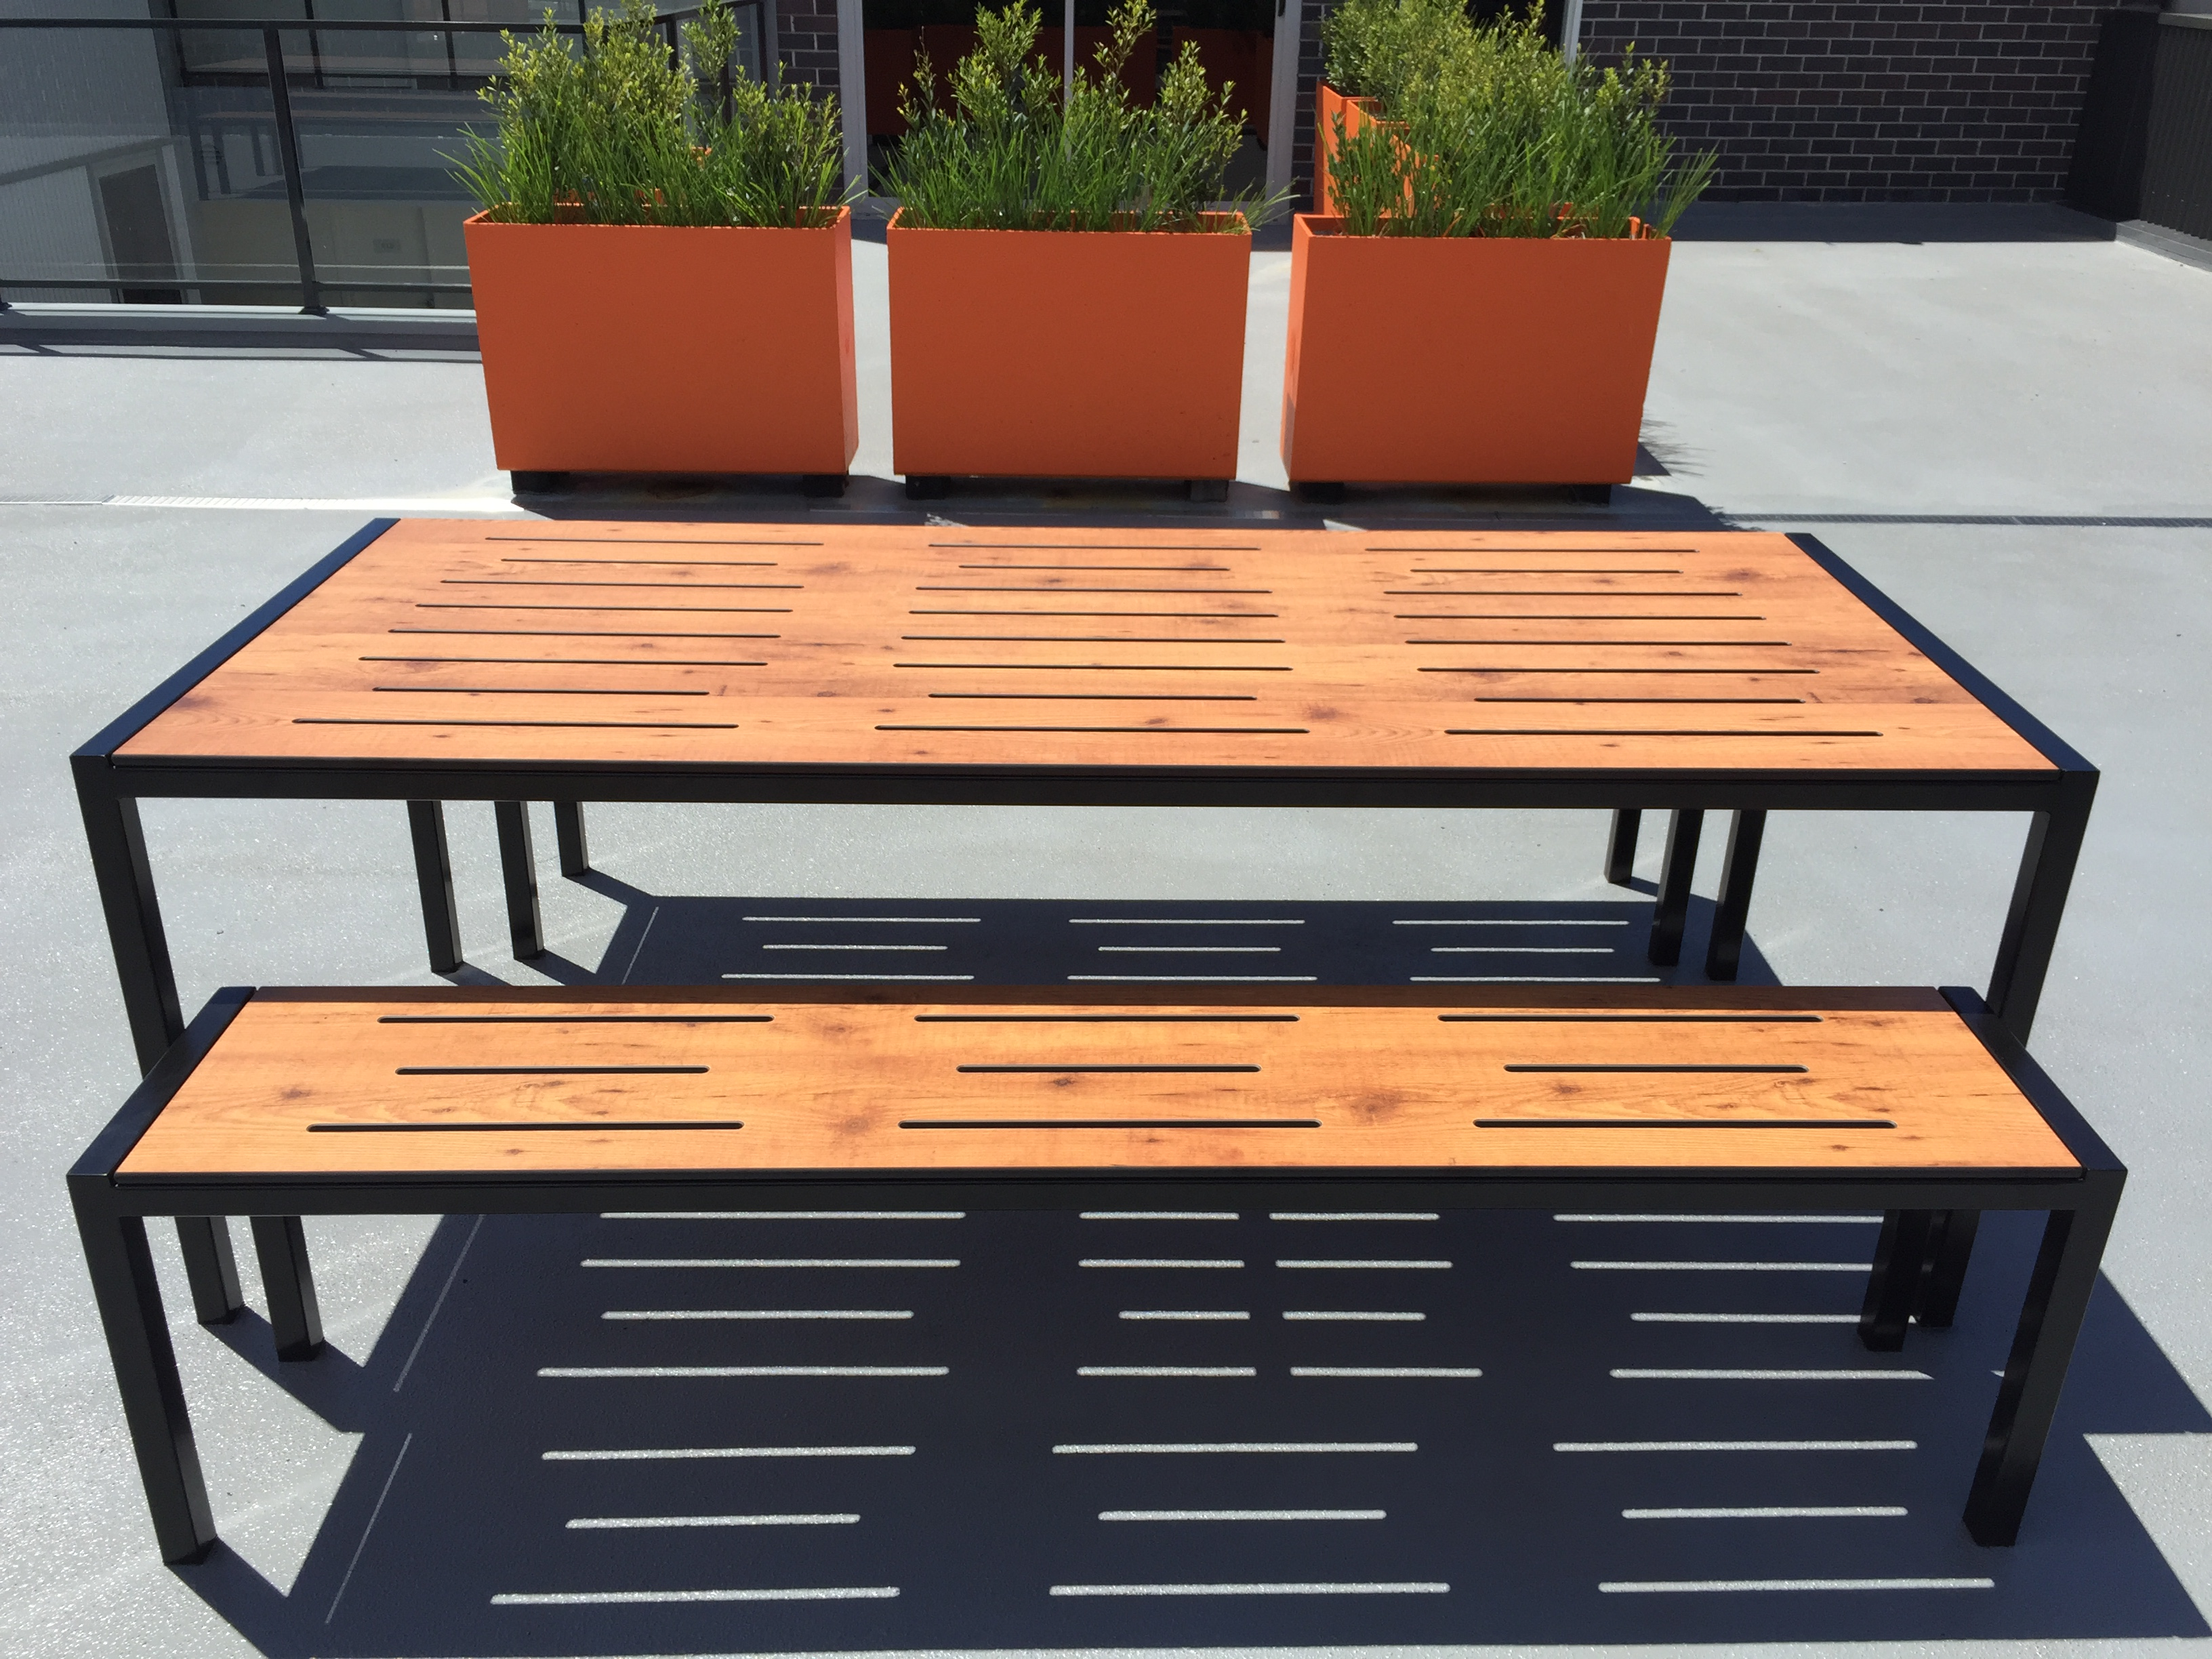 Outdoor Tables 5_Wattle Lane Roof